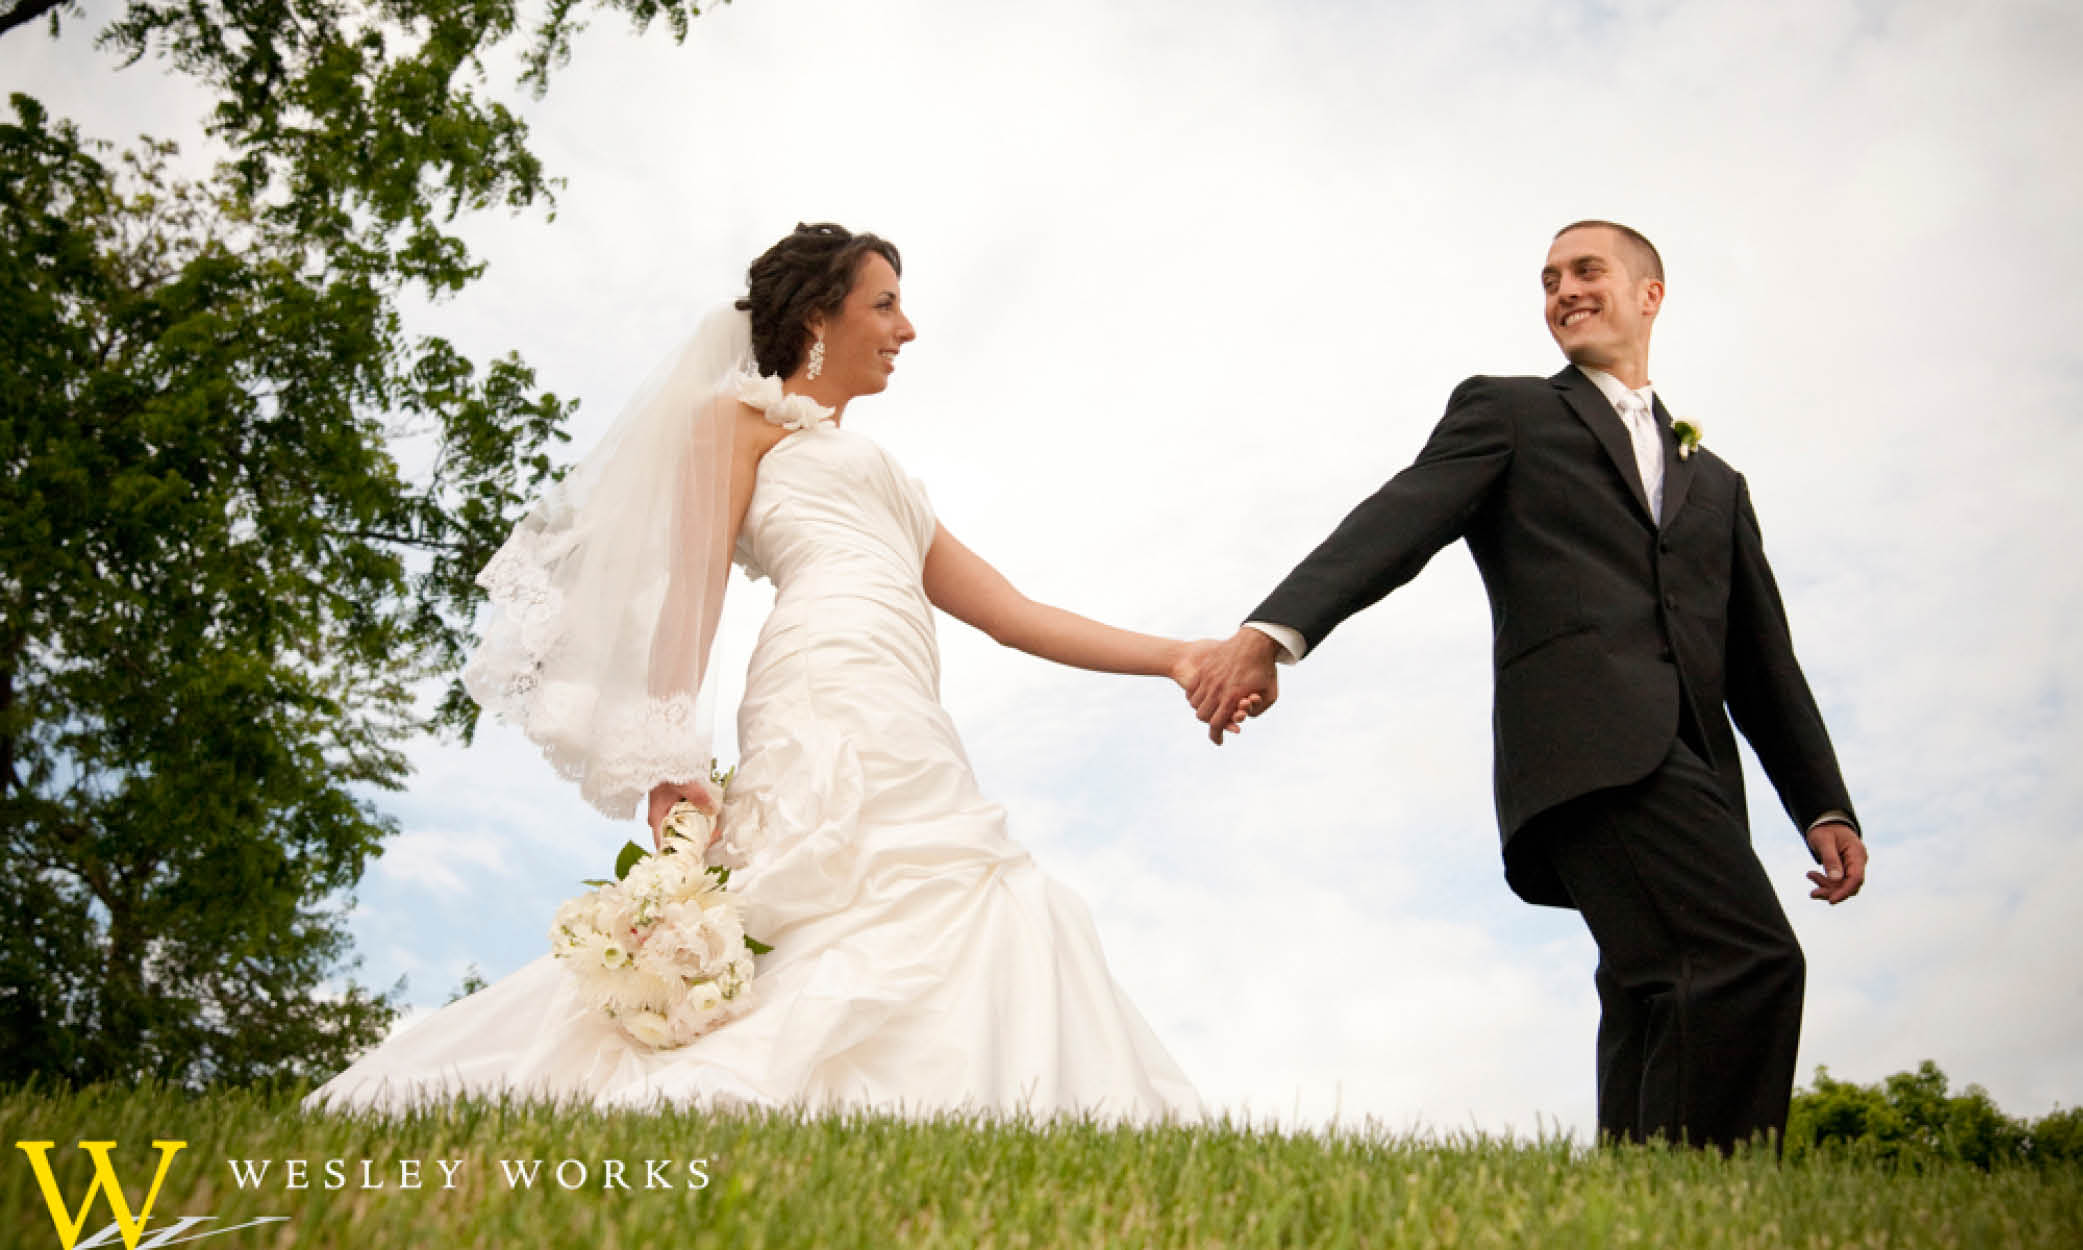 Lehigh Valley Wedding And Reception Sites Wesley Works